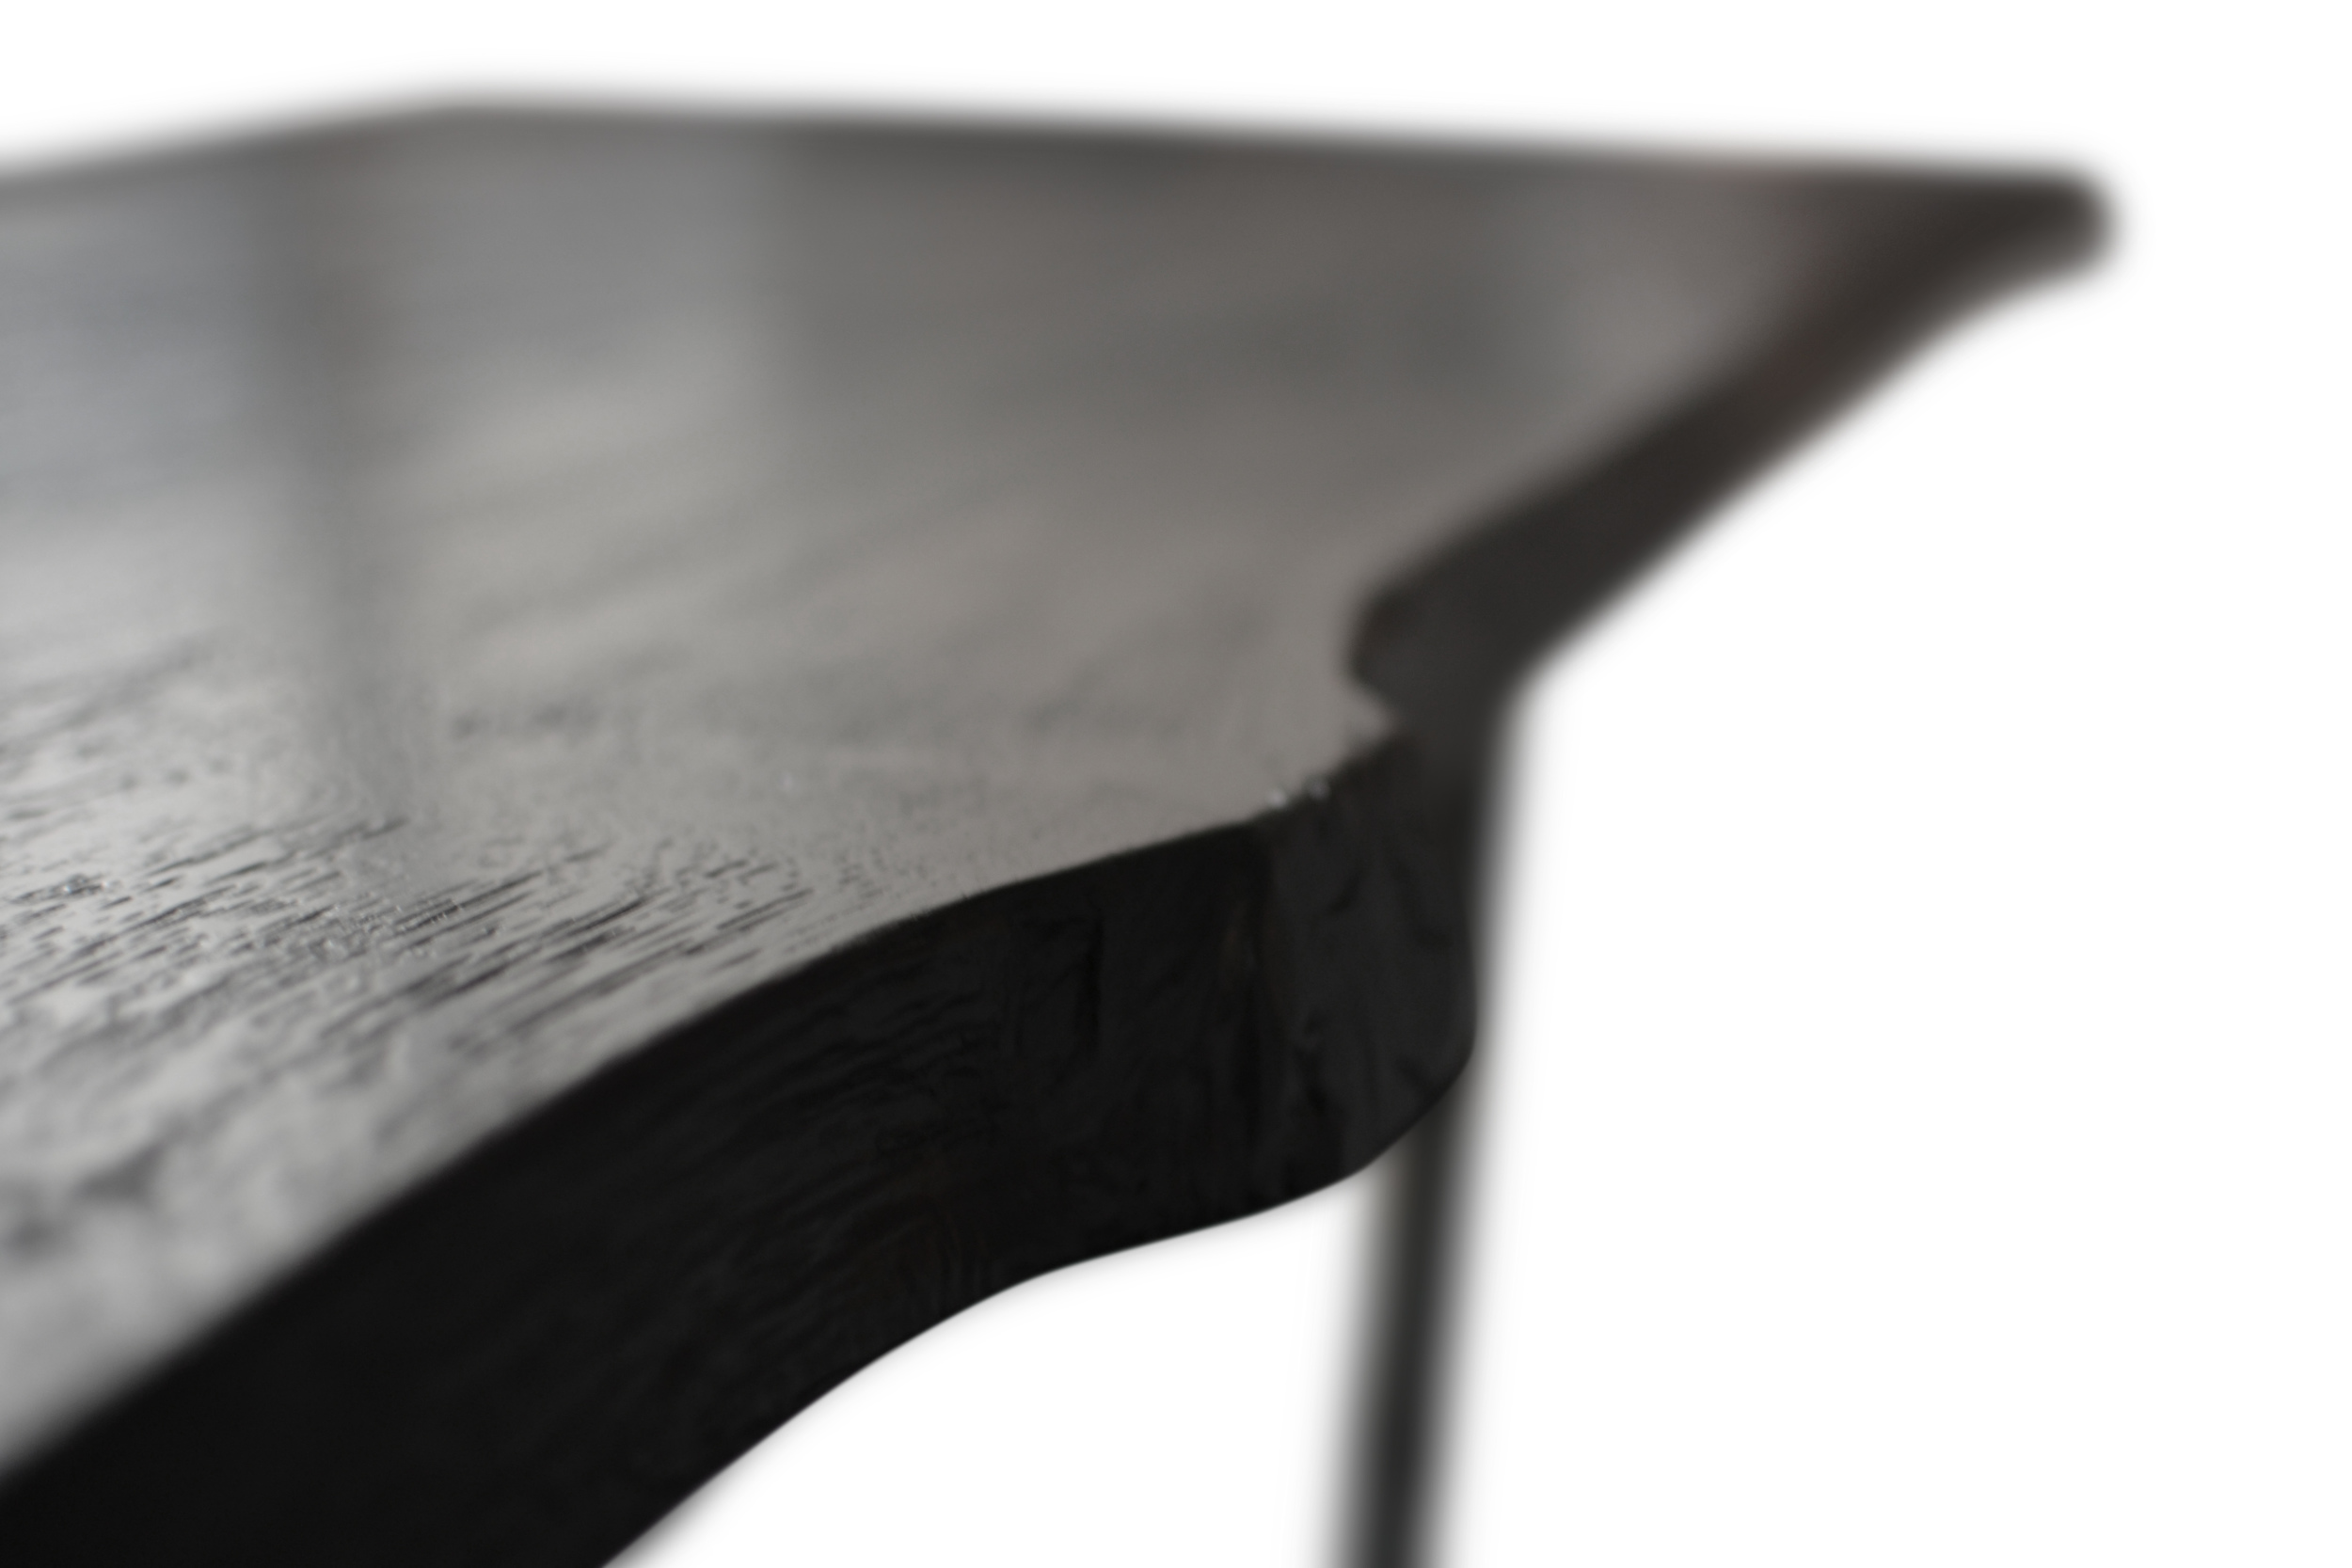 Etz & Steel Ganymede Live Edge Table Close Up 2.JPG